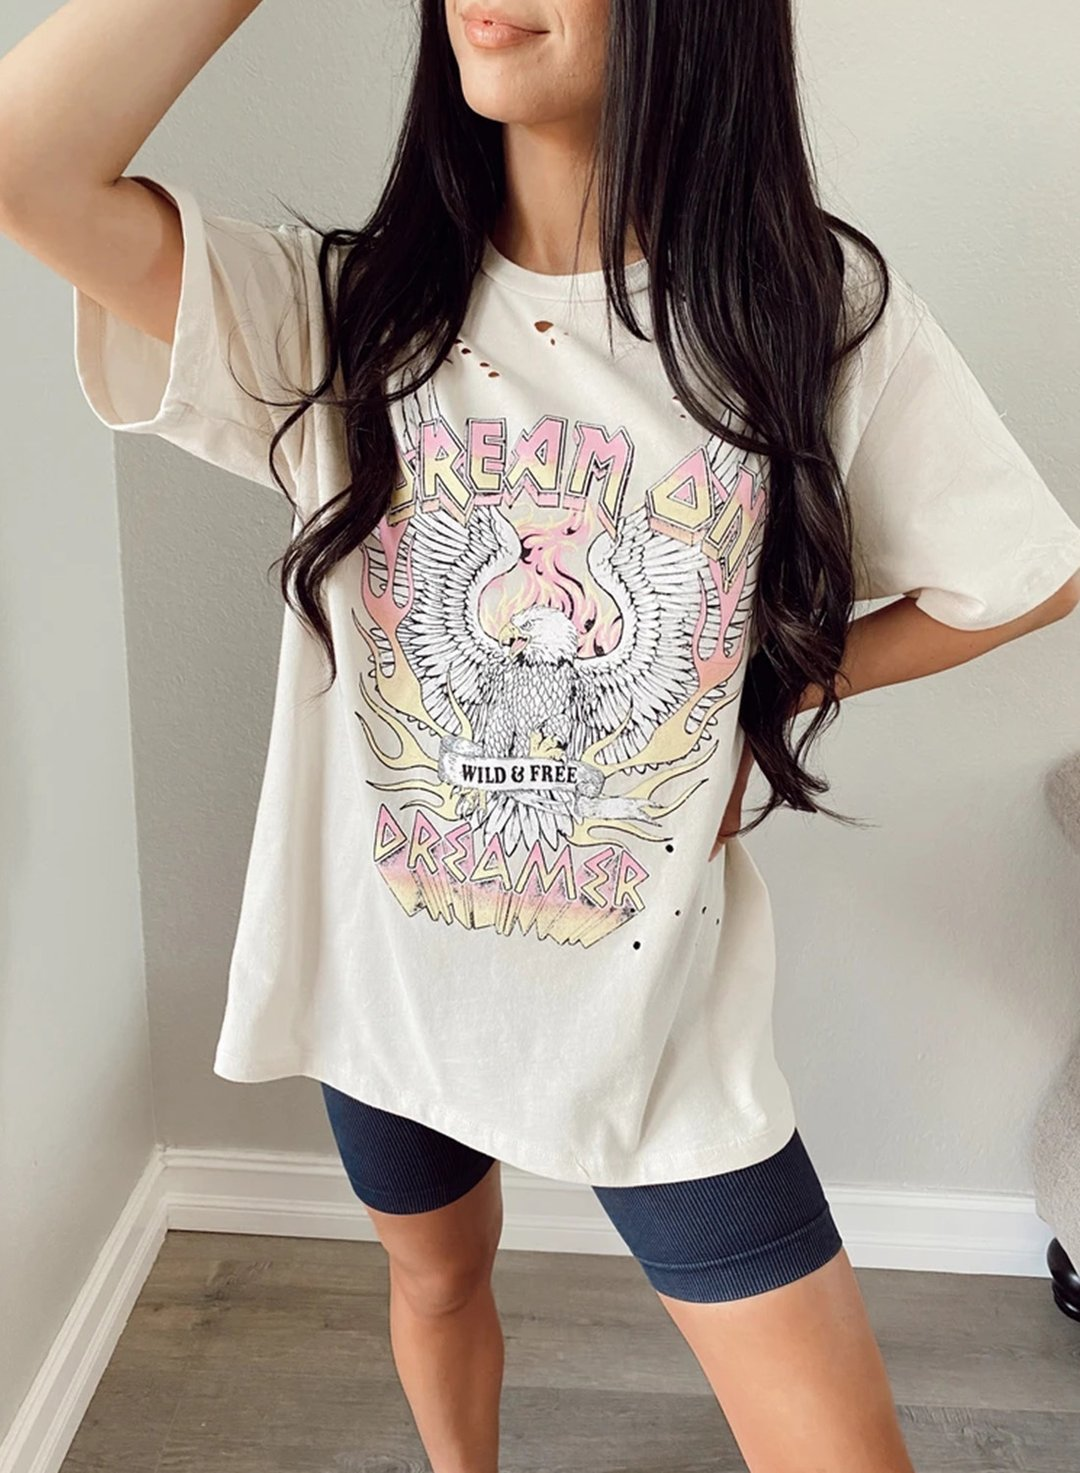 Beige Women's T-shirts American Music Festival Letter Print Short Sleeve Round Neck Daily T-shirt LC2525559-15